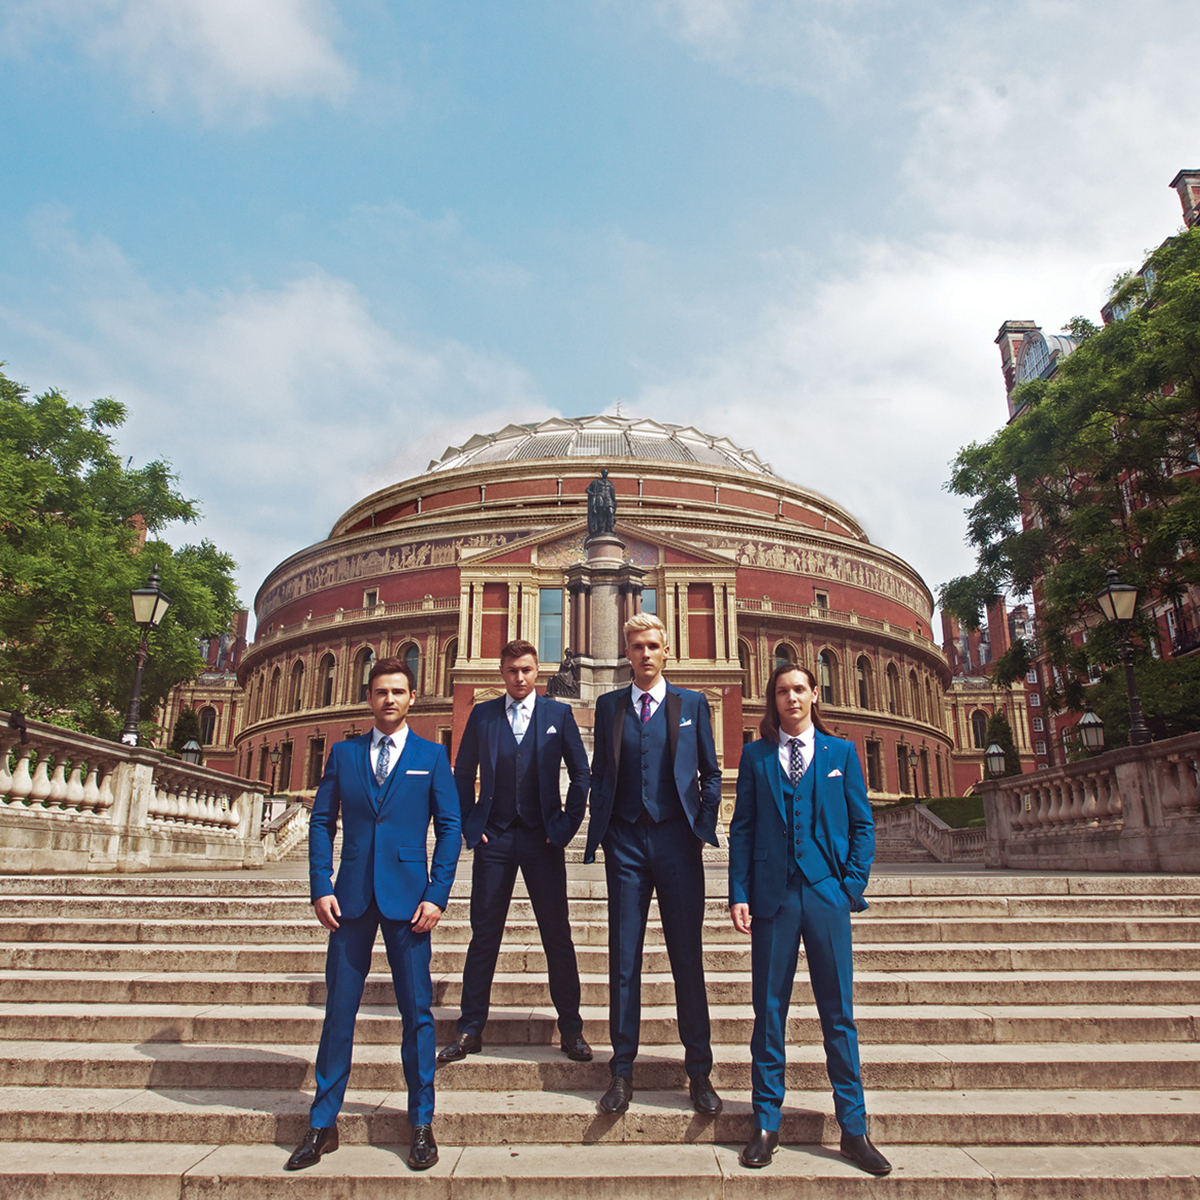 Collabro: Live at Durham Cathedral